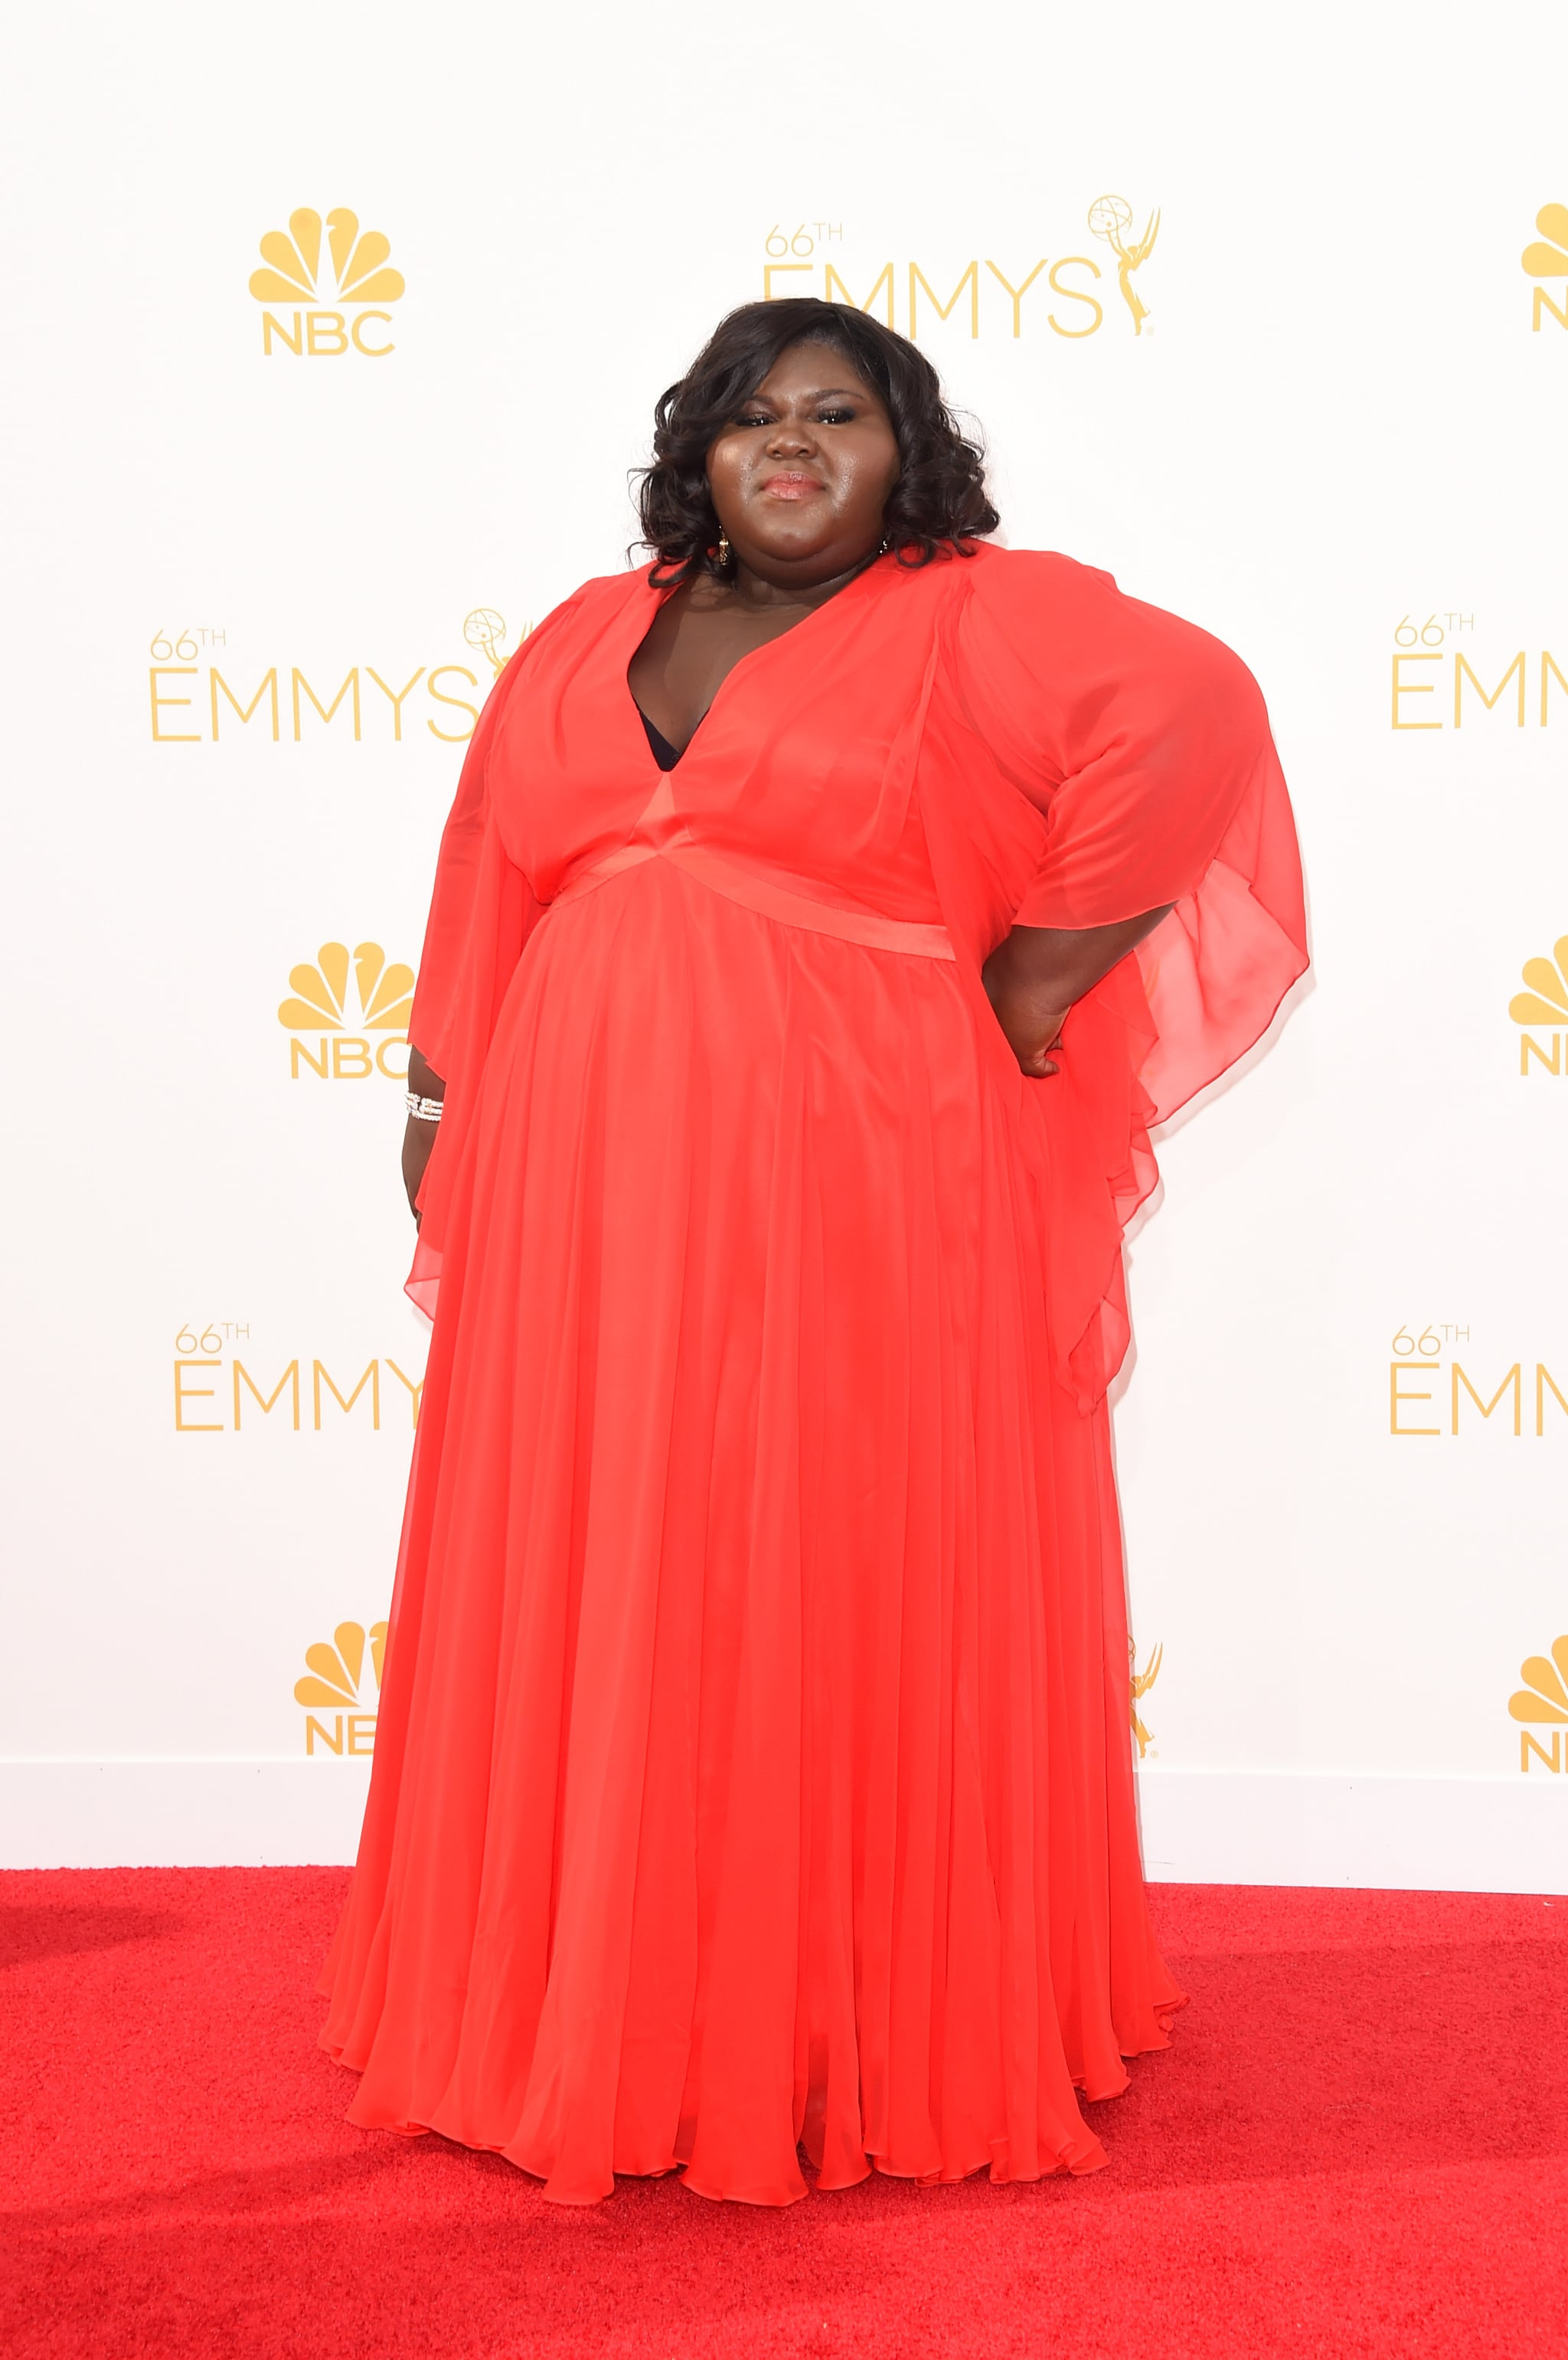 Gabourey Sidibe opted for a vibrant red.